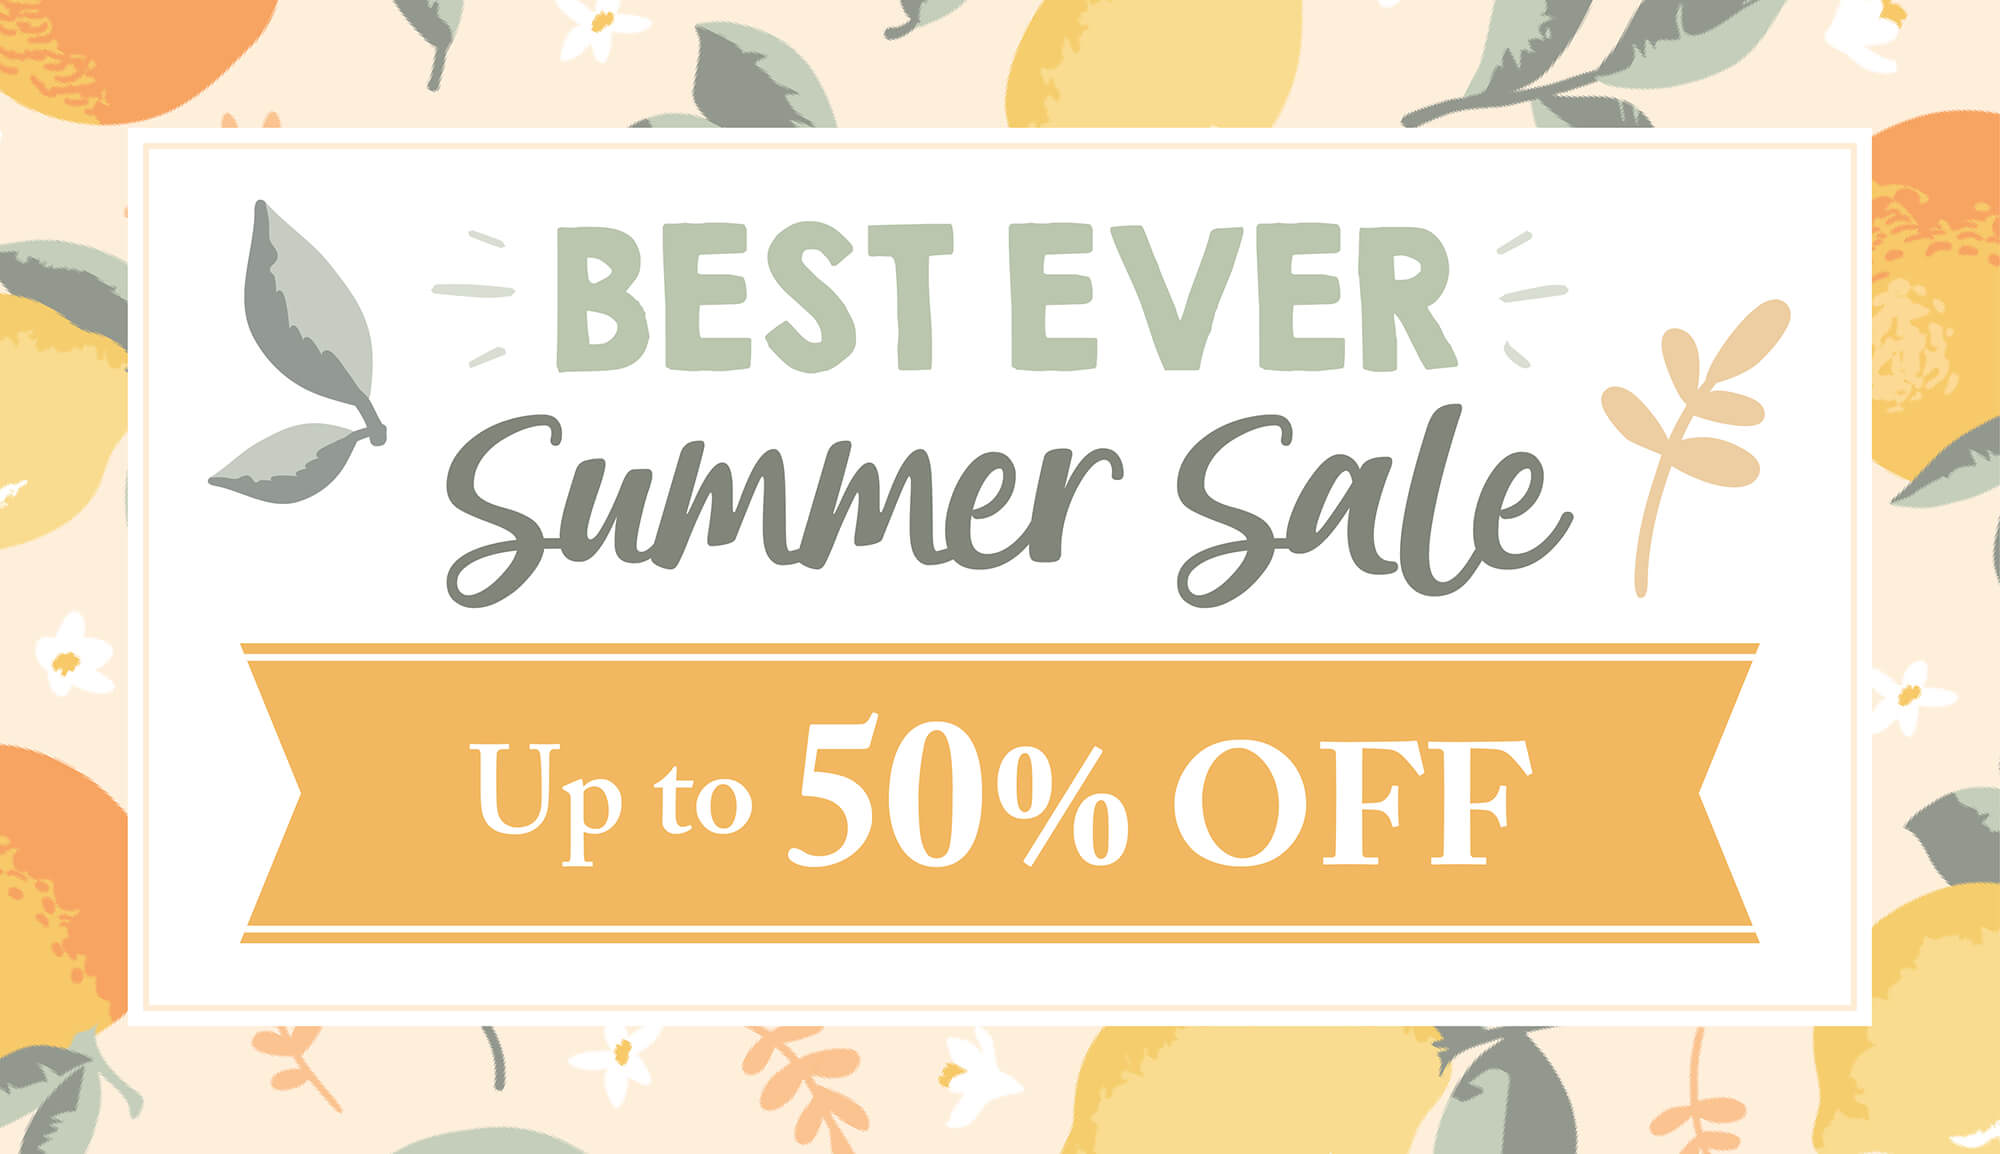 UK_Summer_Sale_2021_MOBILE_CATEGORY_BANNER_Up_to_50__2x_1